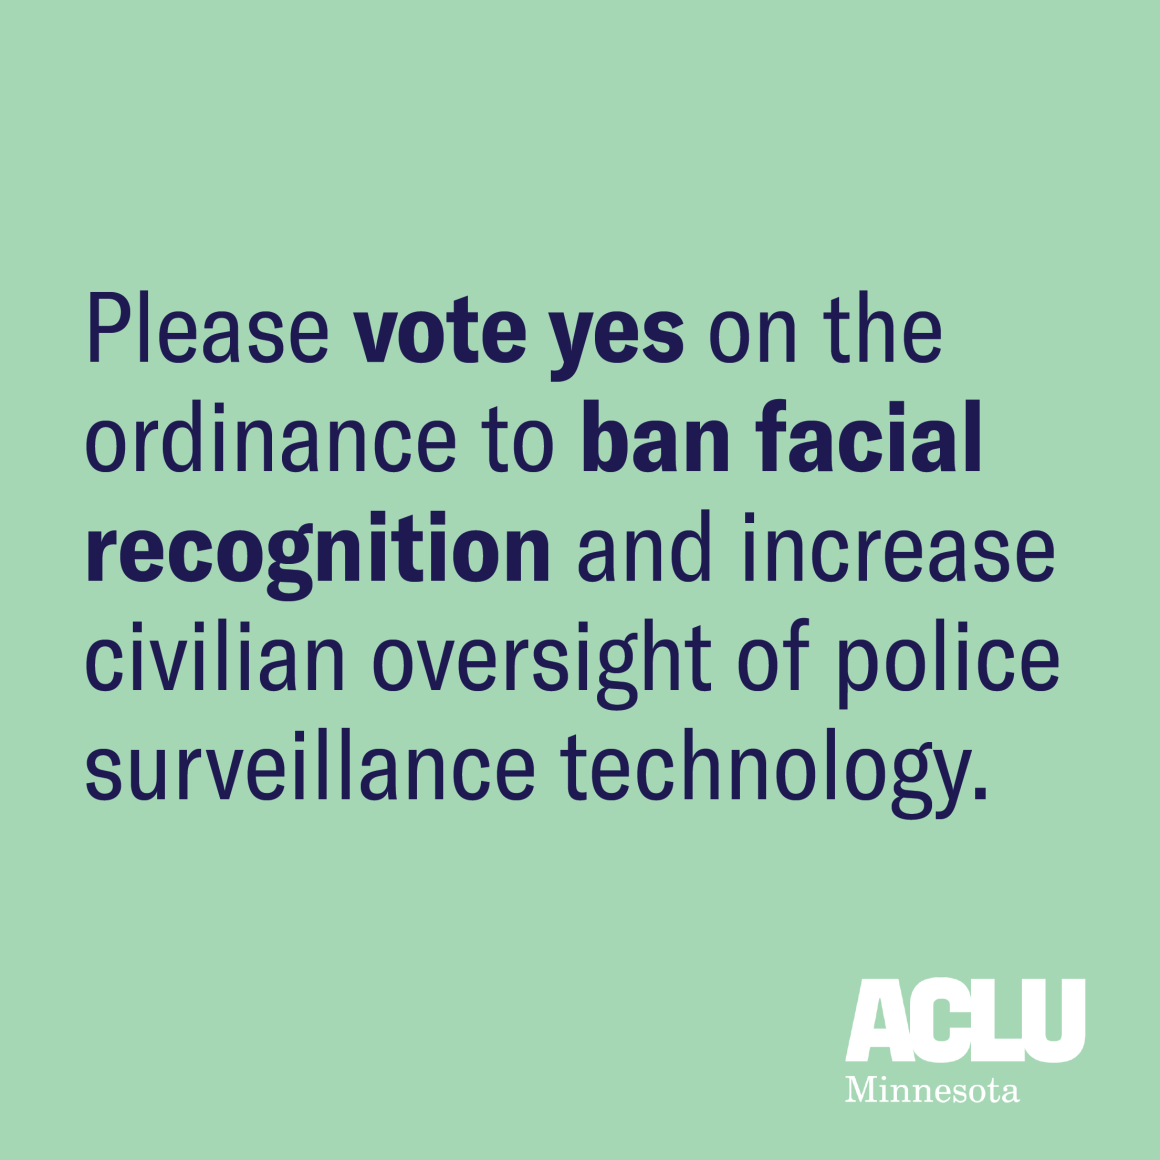 Please vote yes on the ordinance to ban facial recognition.